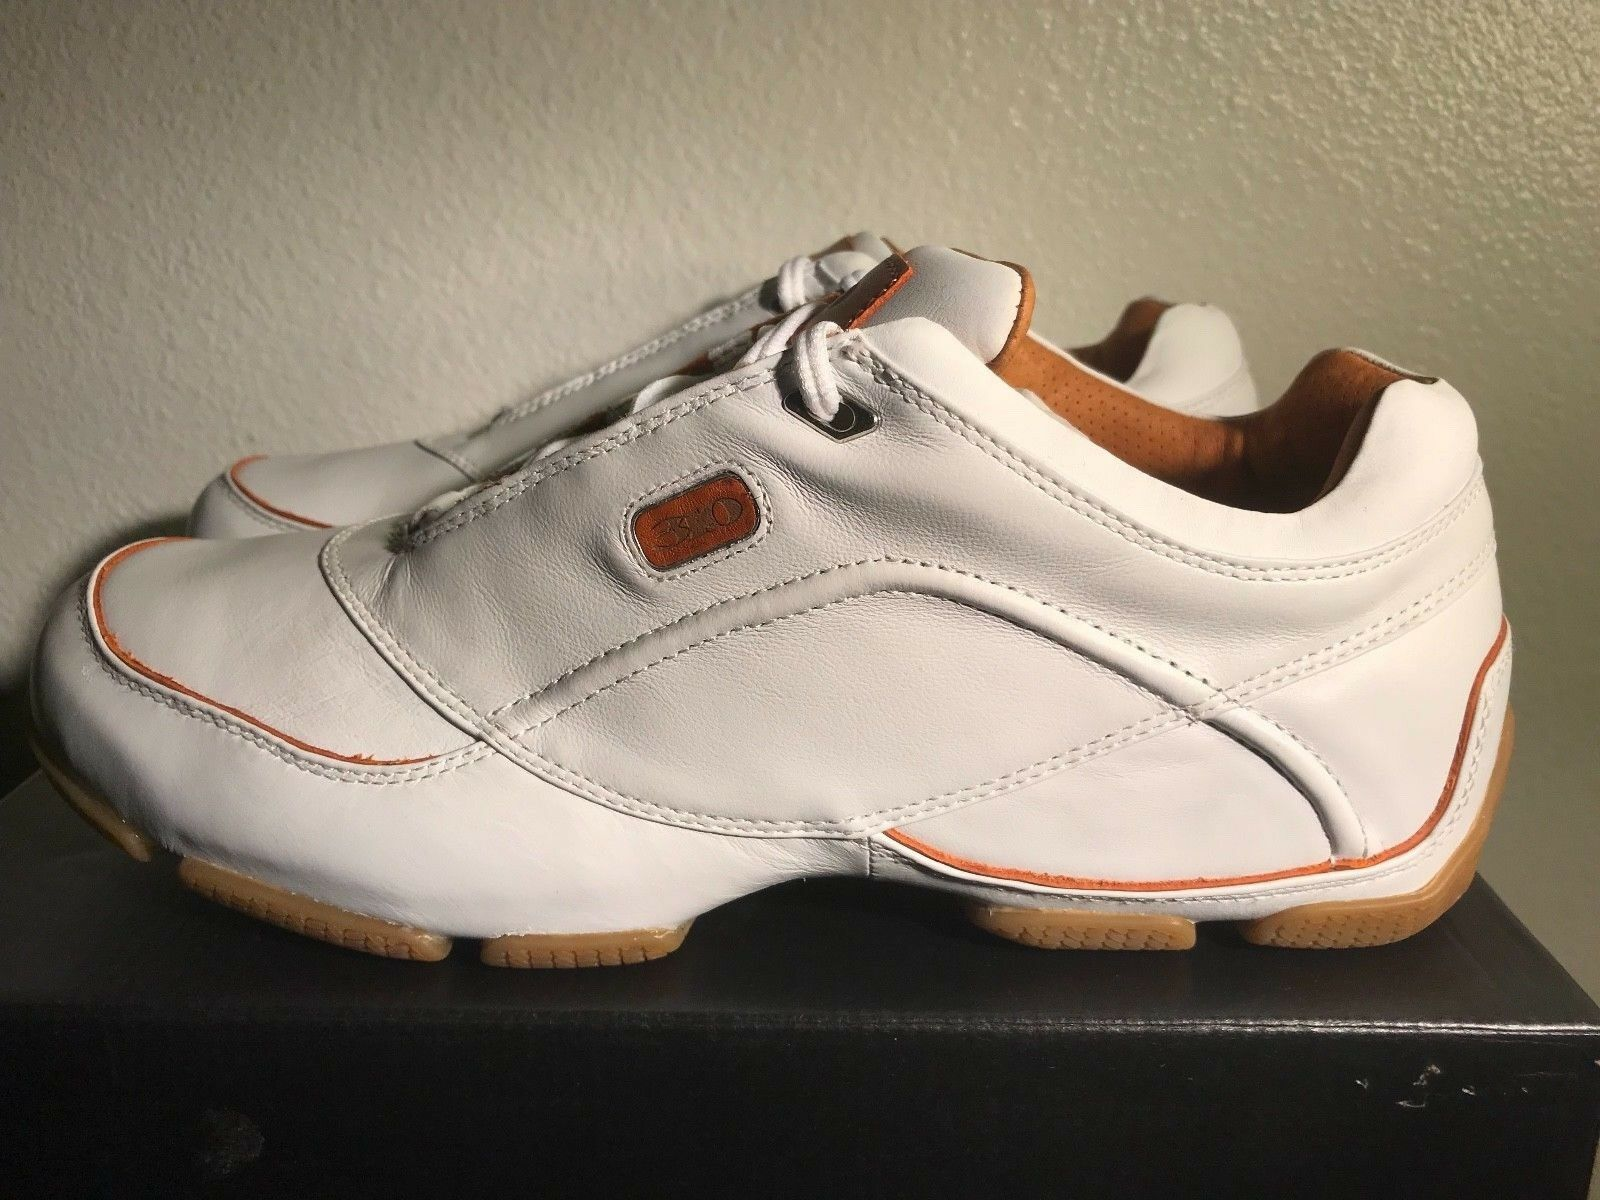 310 MOTORING URRACO 31086 White Tan Light Brown Uomo Size 11 11.5 Authentic DS